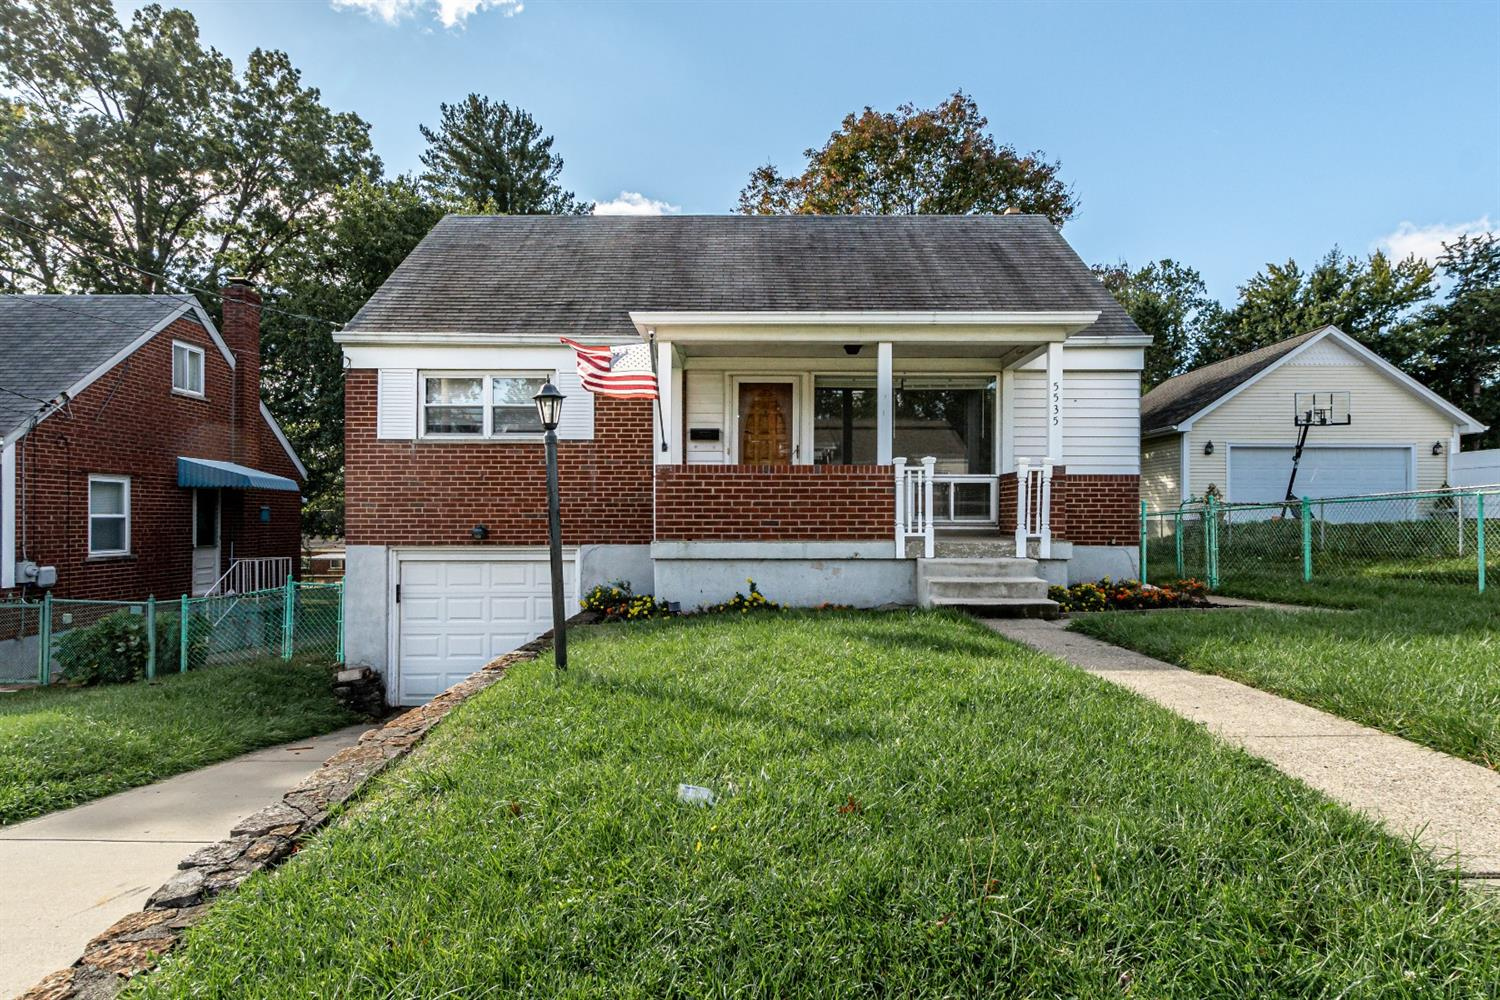 5535 Lawrence Road, Green Twp, Ohio 45248, 4 Bedrooms Bedrooms, 8 Rooms Rooms,1 BathroomBathrooms,Single Family Residence,For Sale,Lawrence,1719376